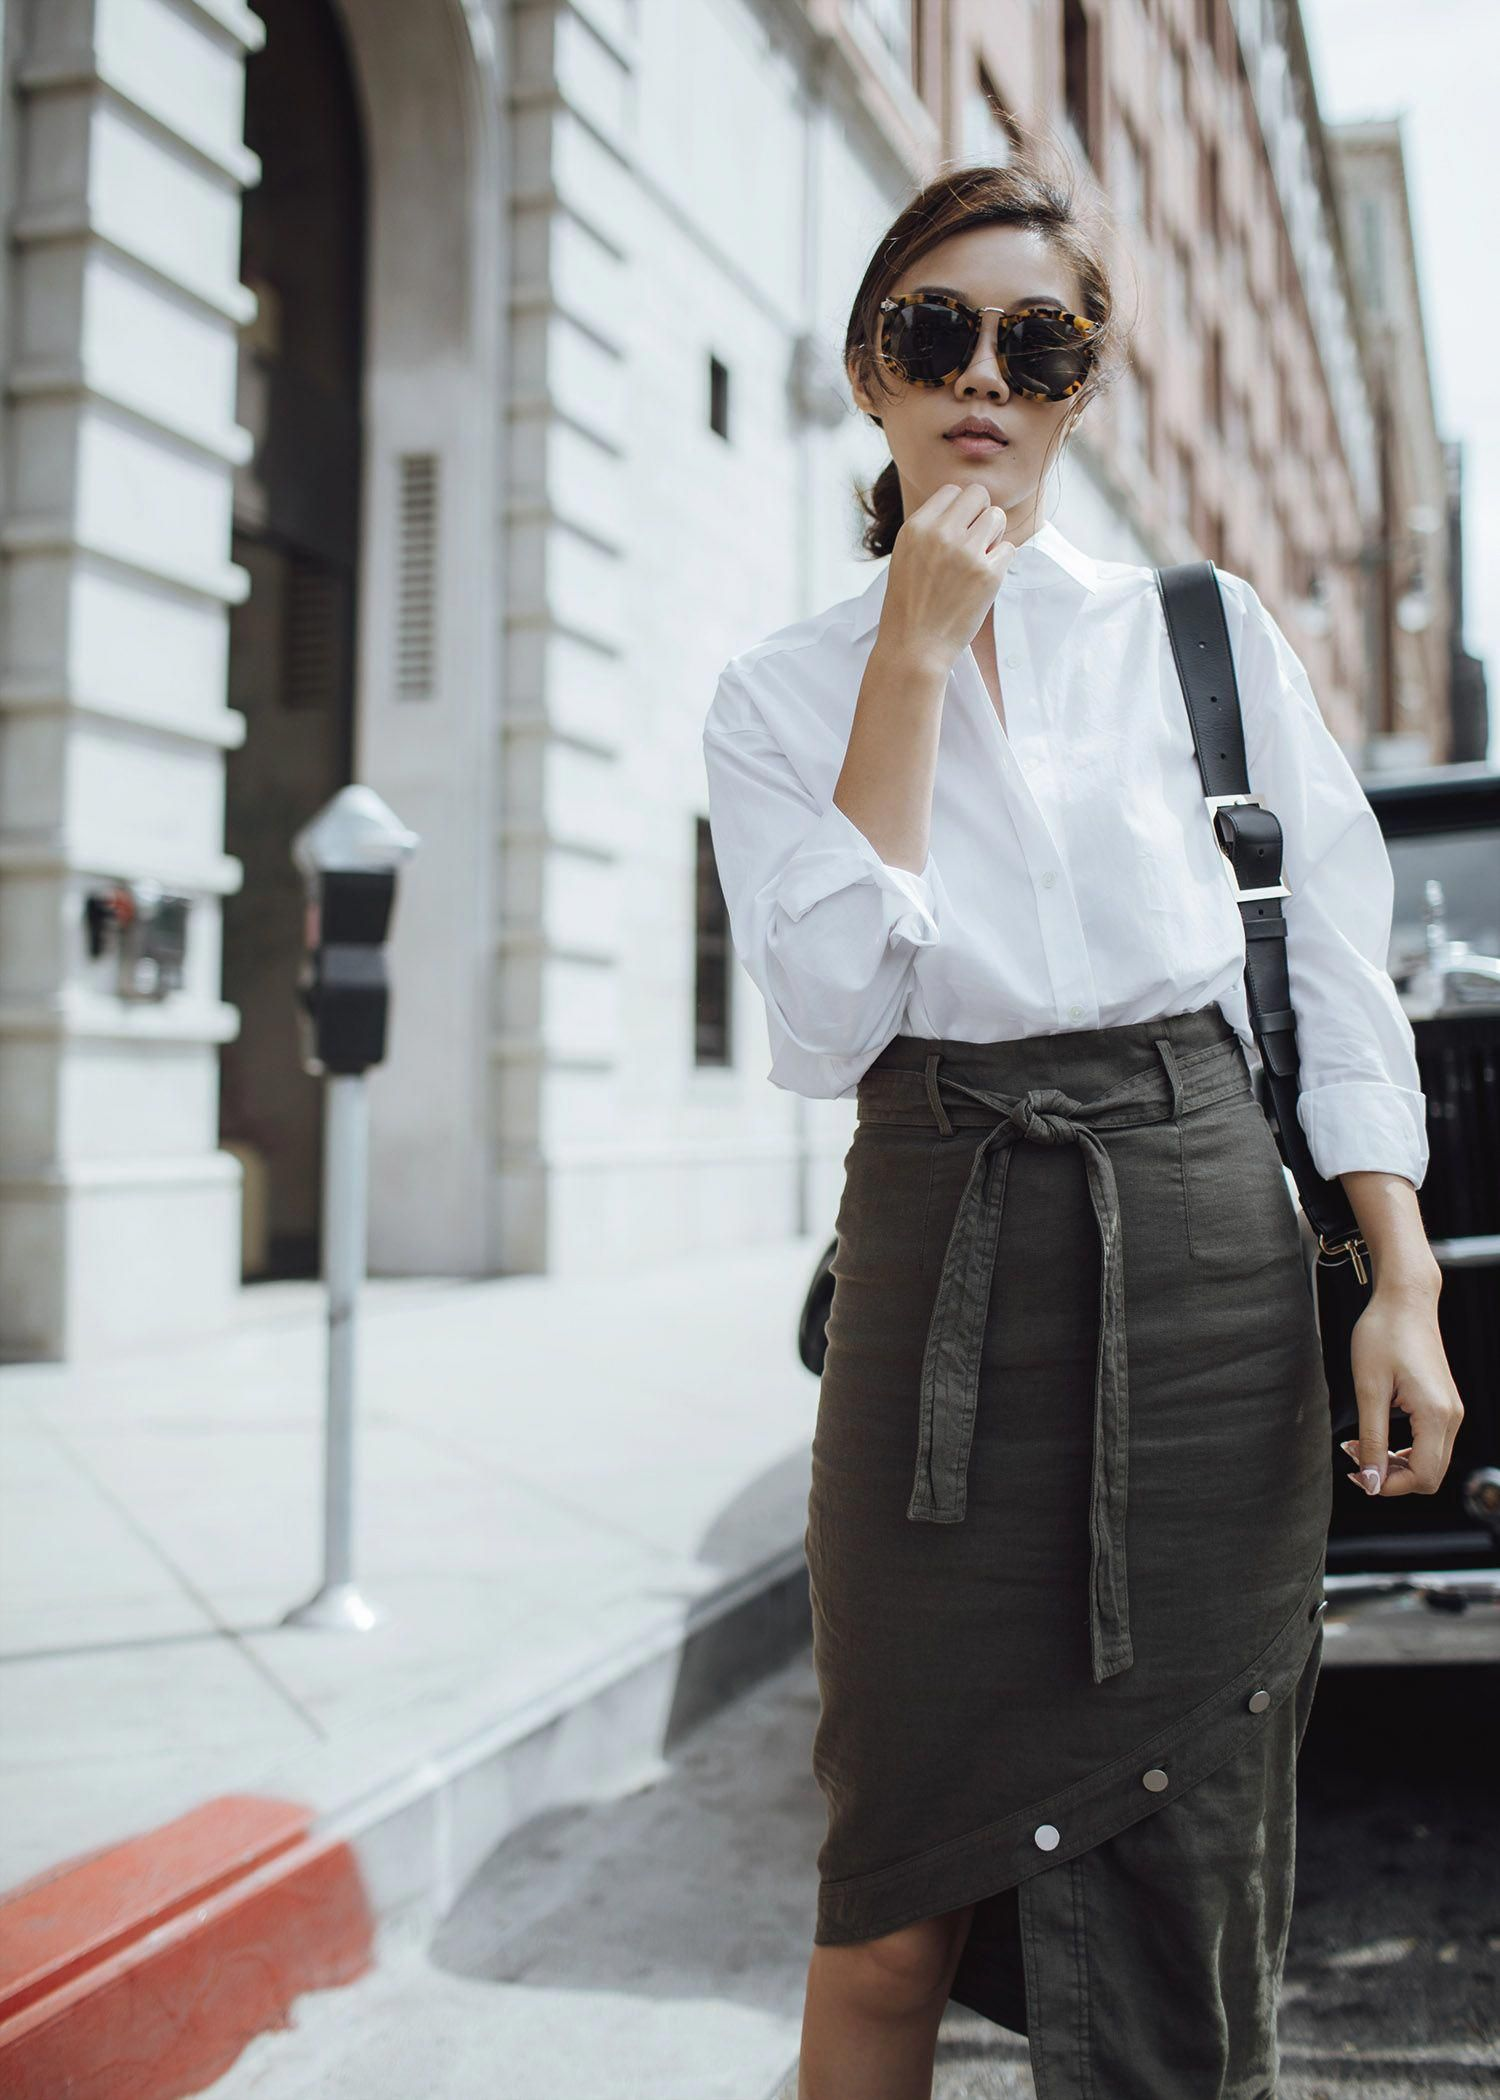 f99cfef4951ef9 ... 100% genuine 1c2b2 039a1 Midi skirt outfit Street style fashion blogger  influencer Jenny Tsang of ...